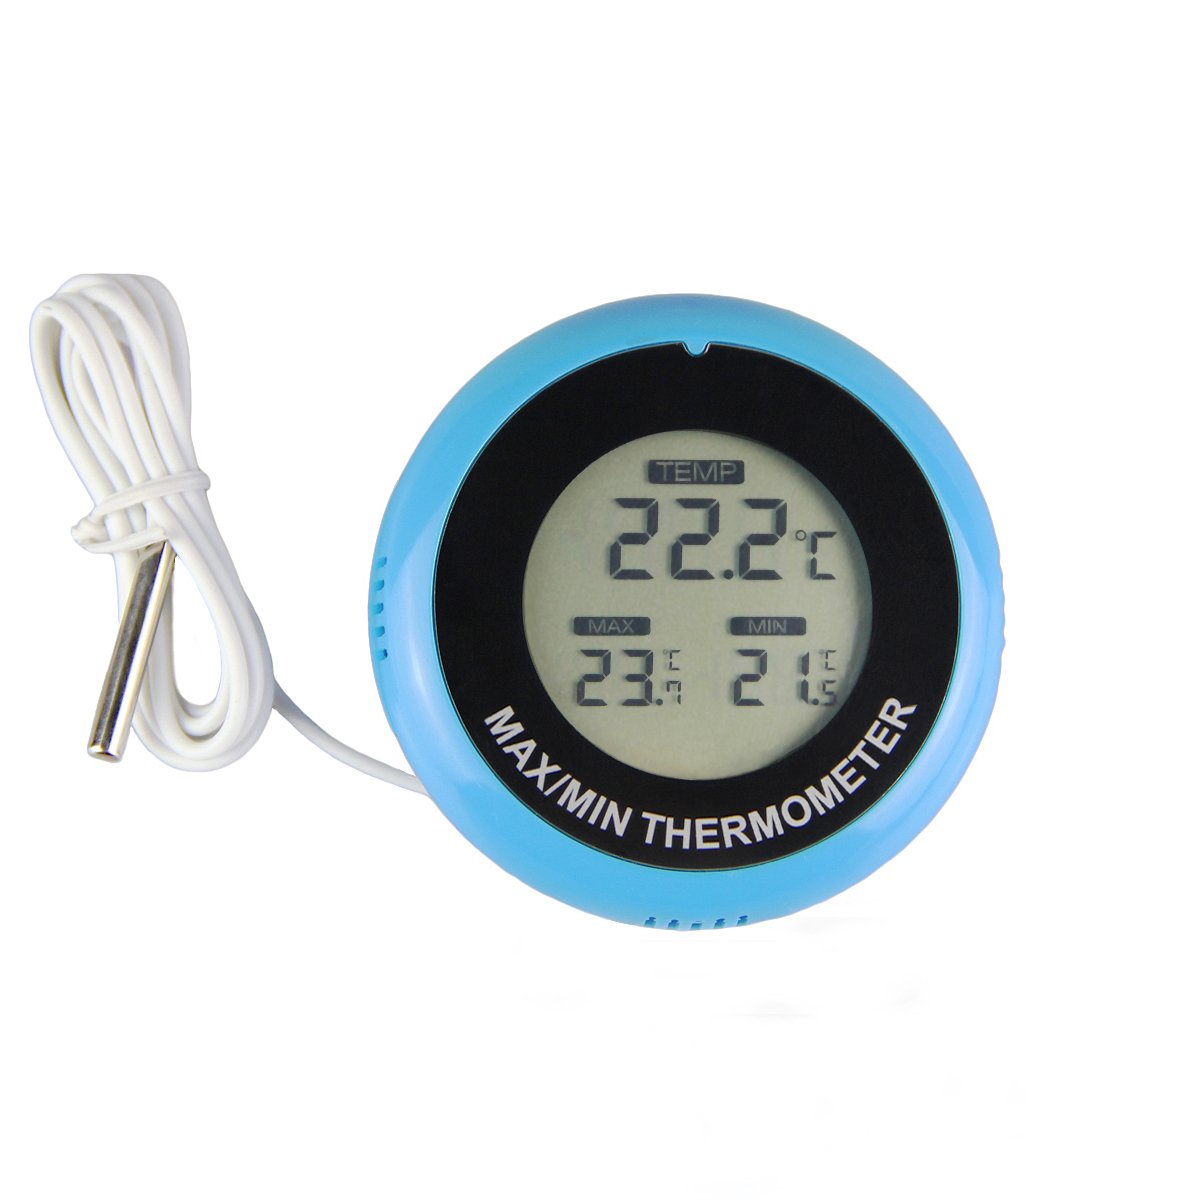 ETHMEAS Mini LCD Indoor Outdoor Digital Thermometer Round Shape with Max/Min Temperature memory function and 1M External Probe for Vehicle, Room, Gardening,Reptile, Pet Keeping